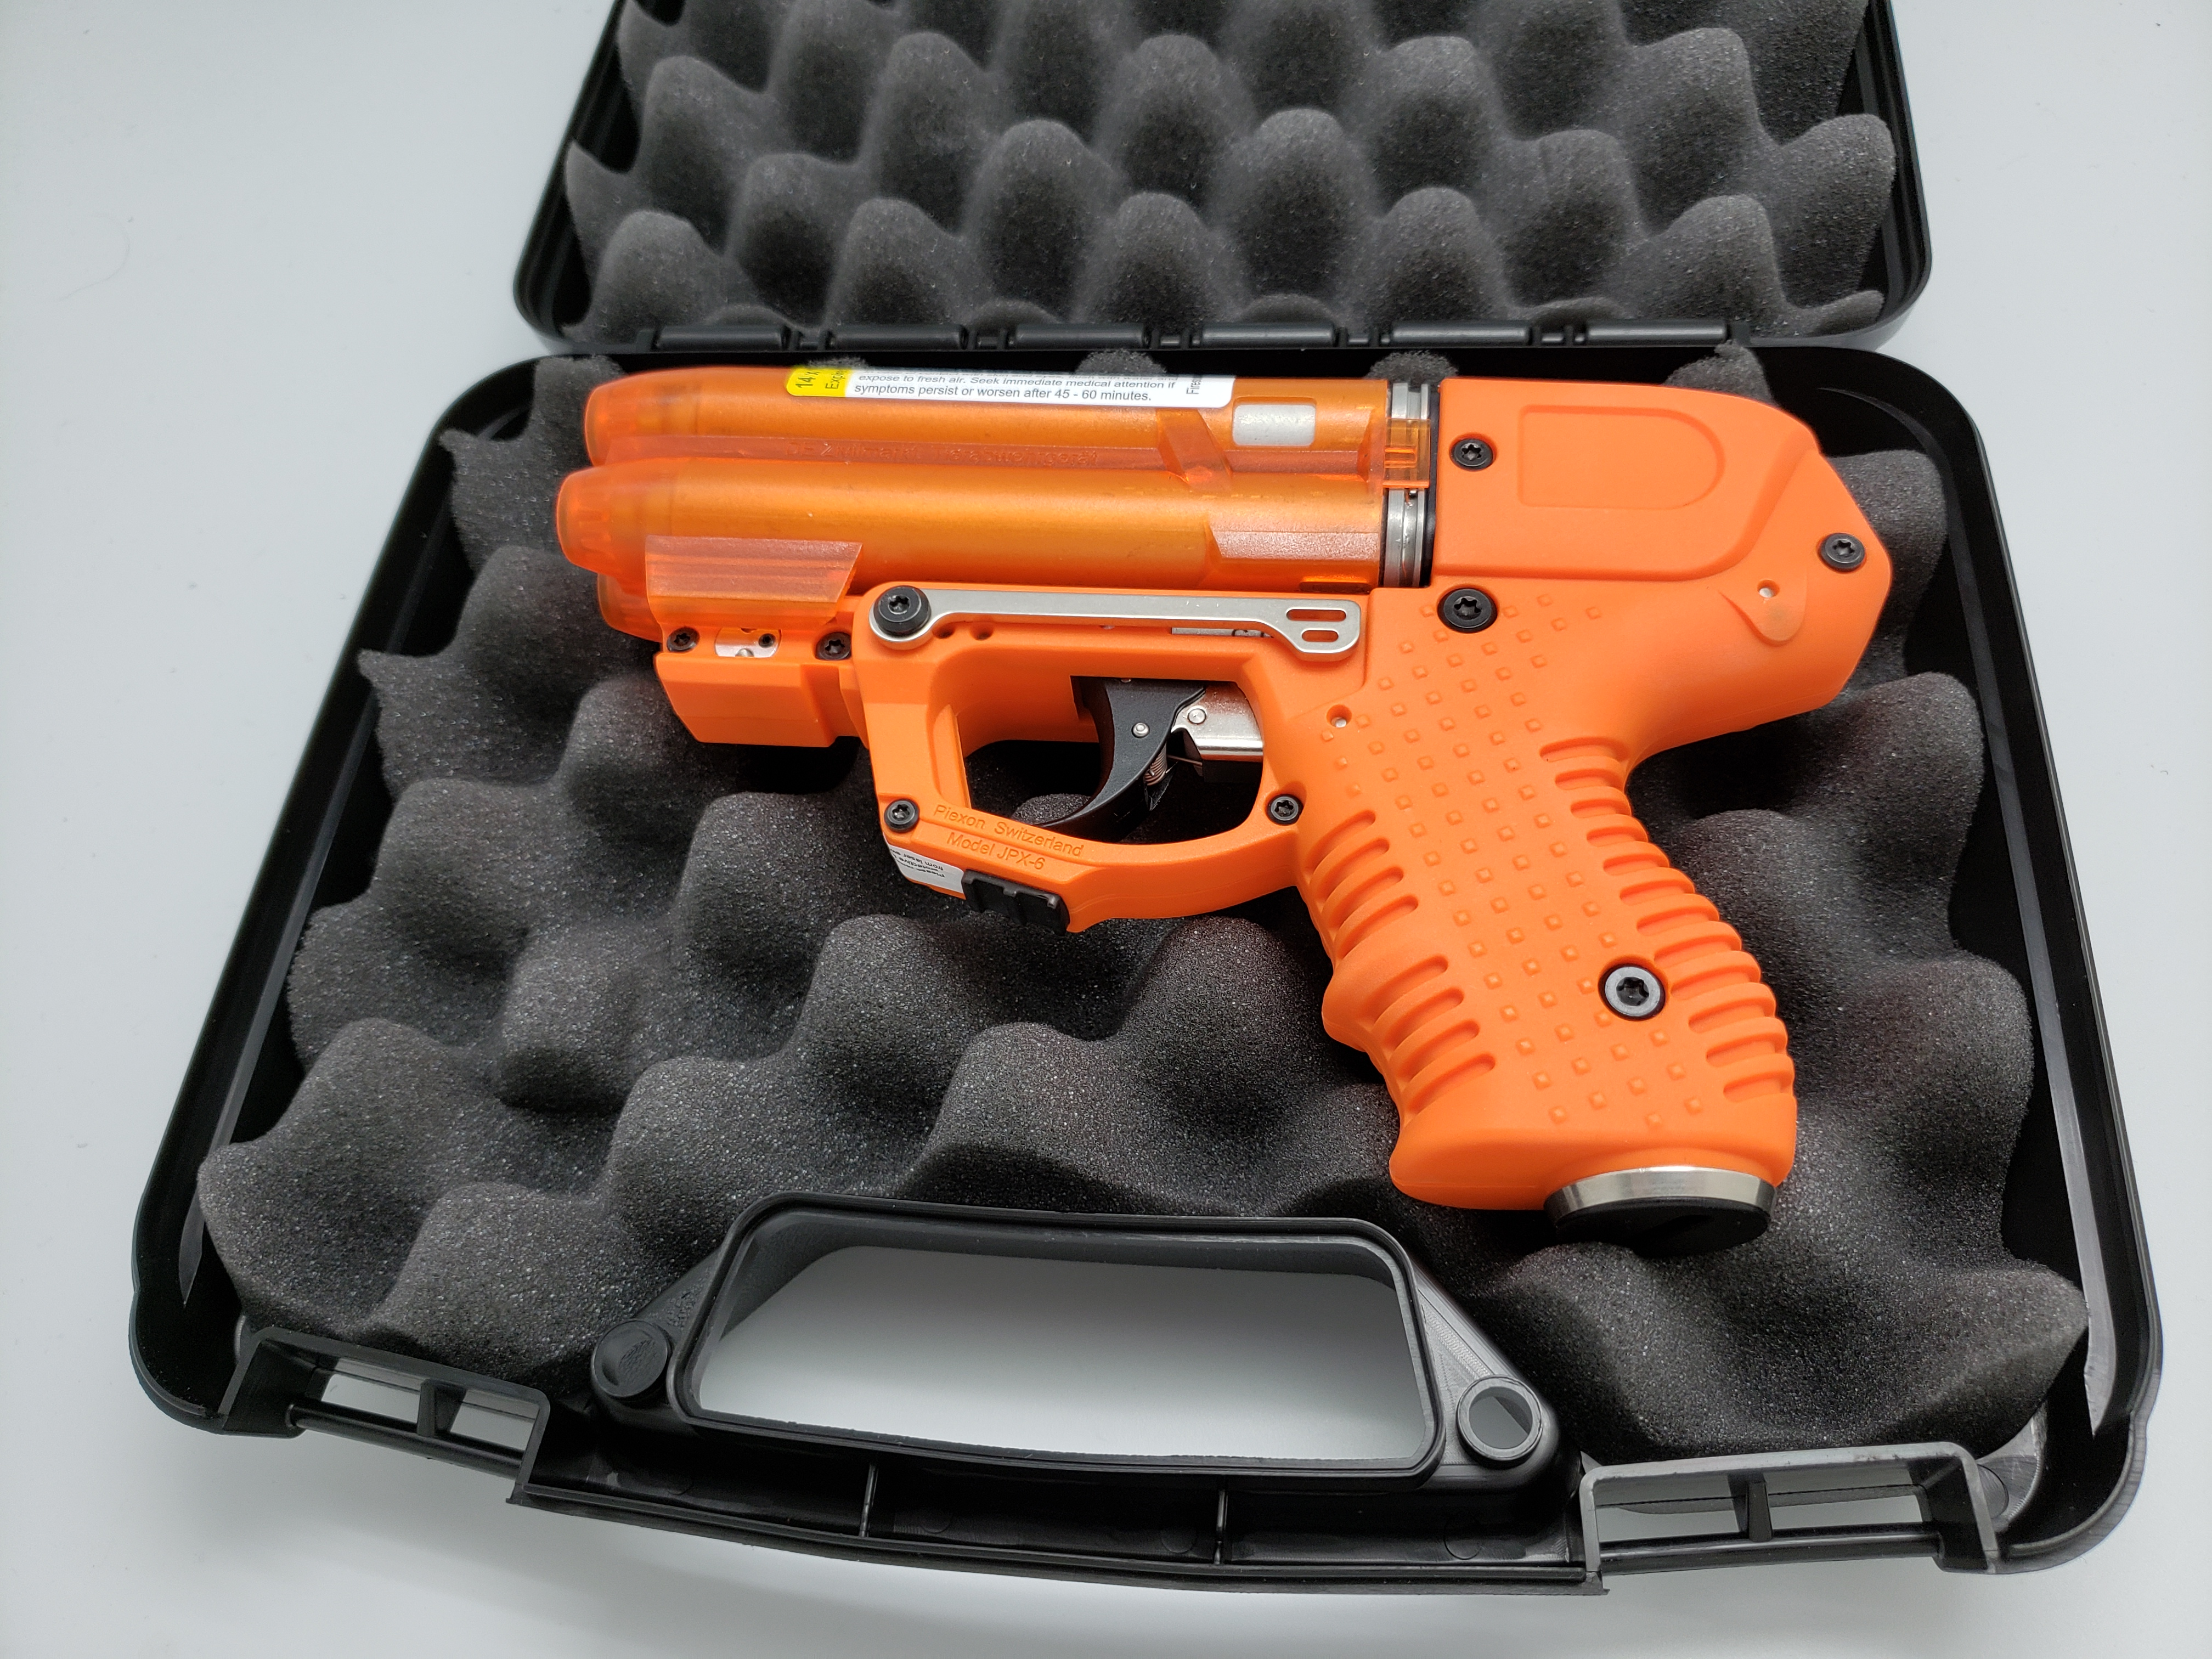 FIRESTORM JPX 6 Compact 4 Shot Pepper Gun Orange with Laser